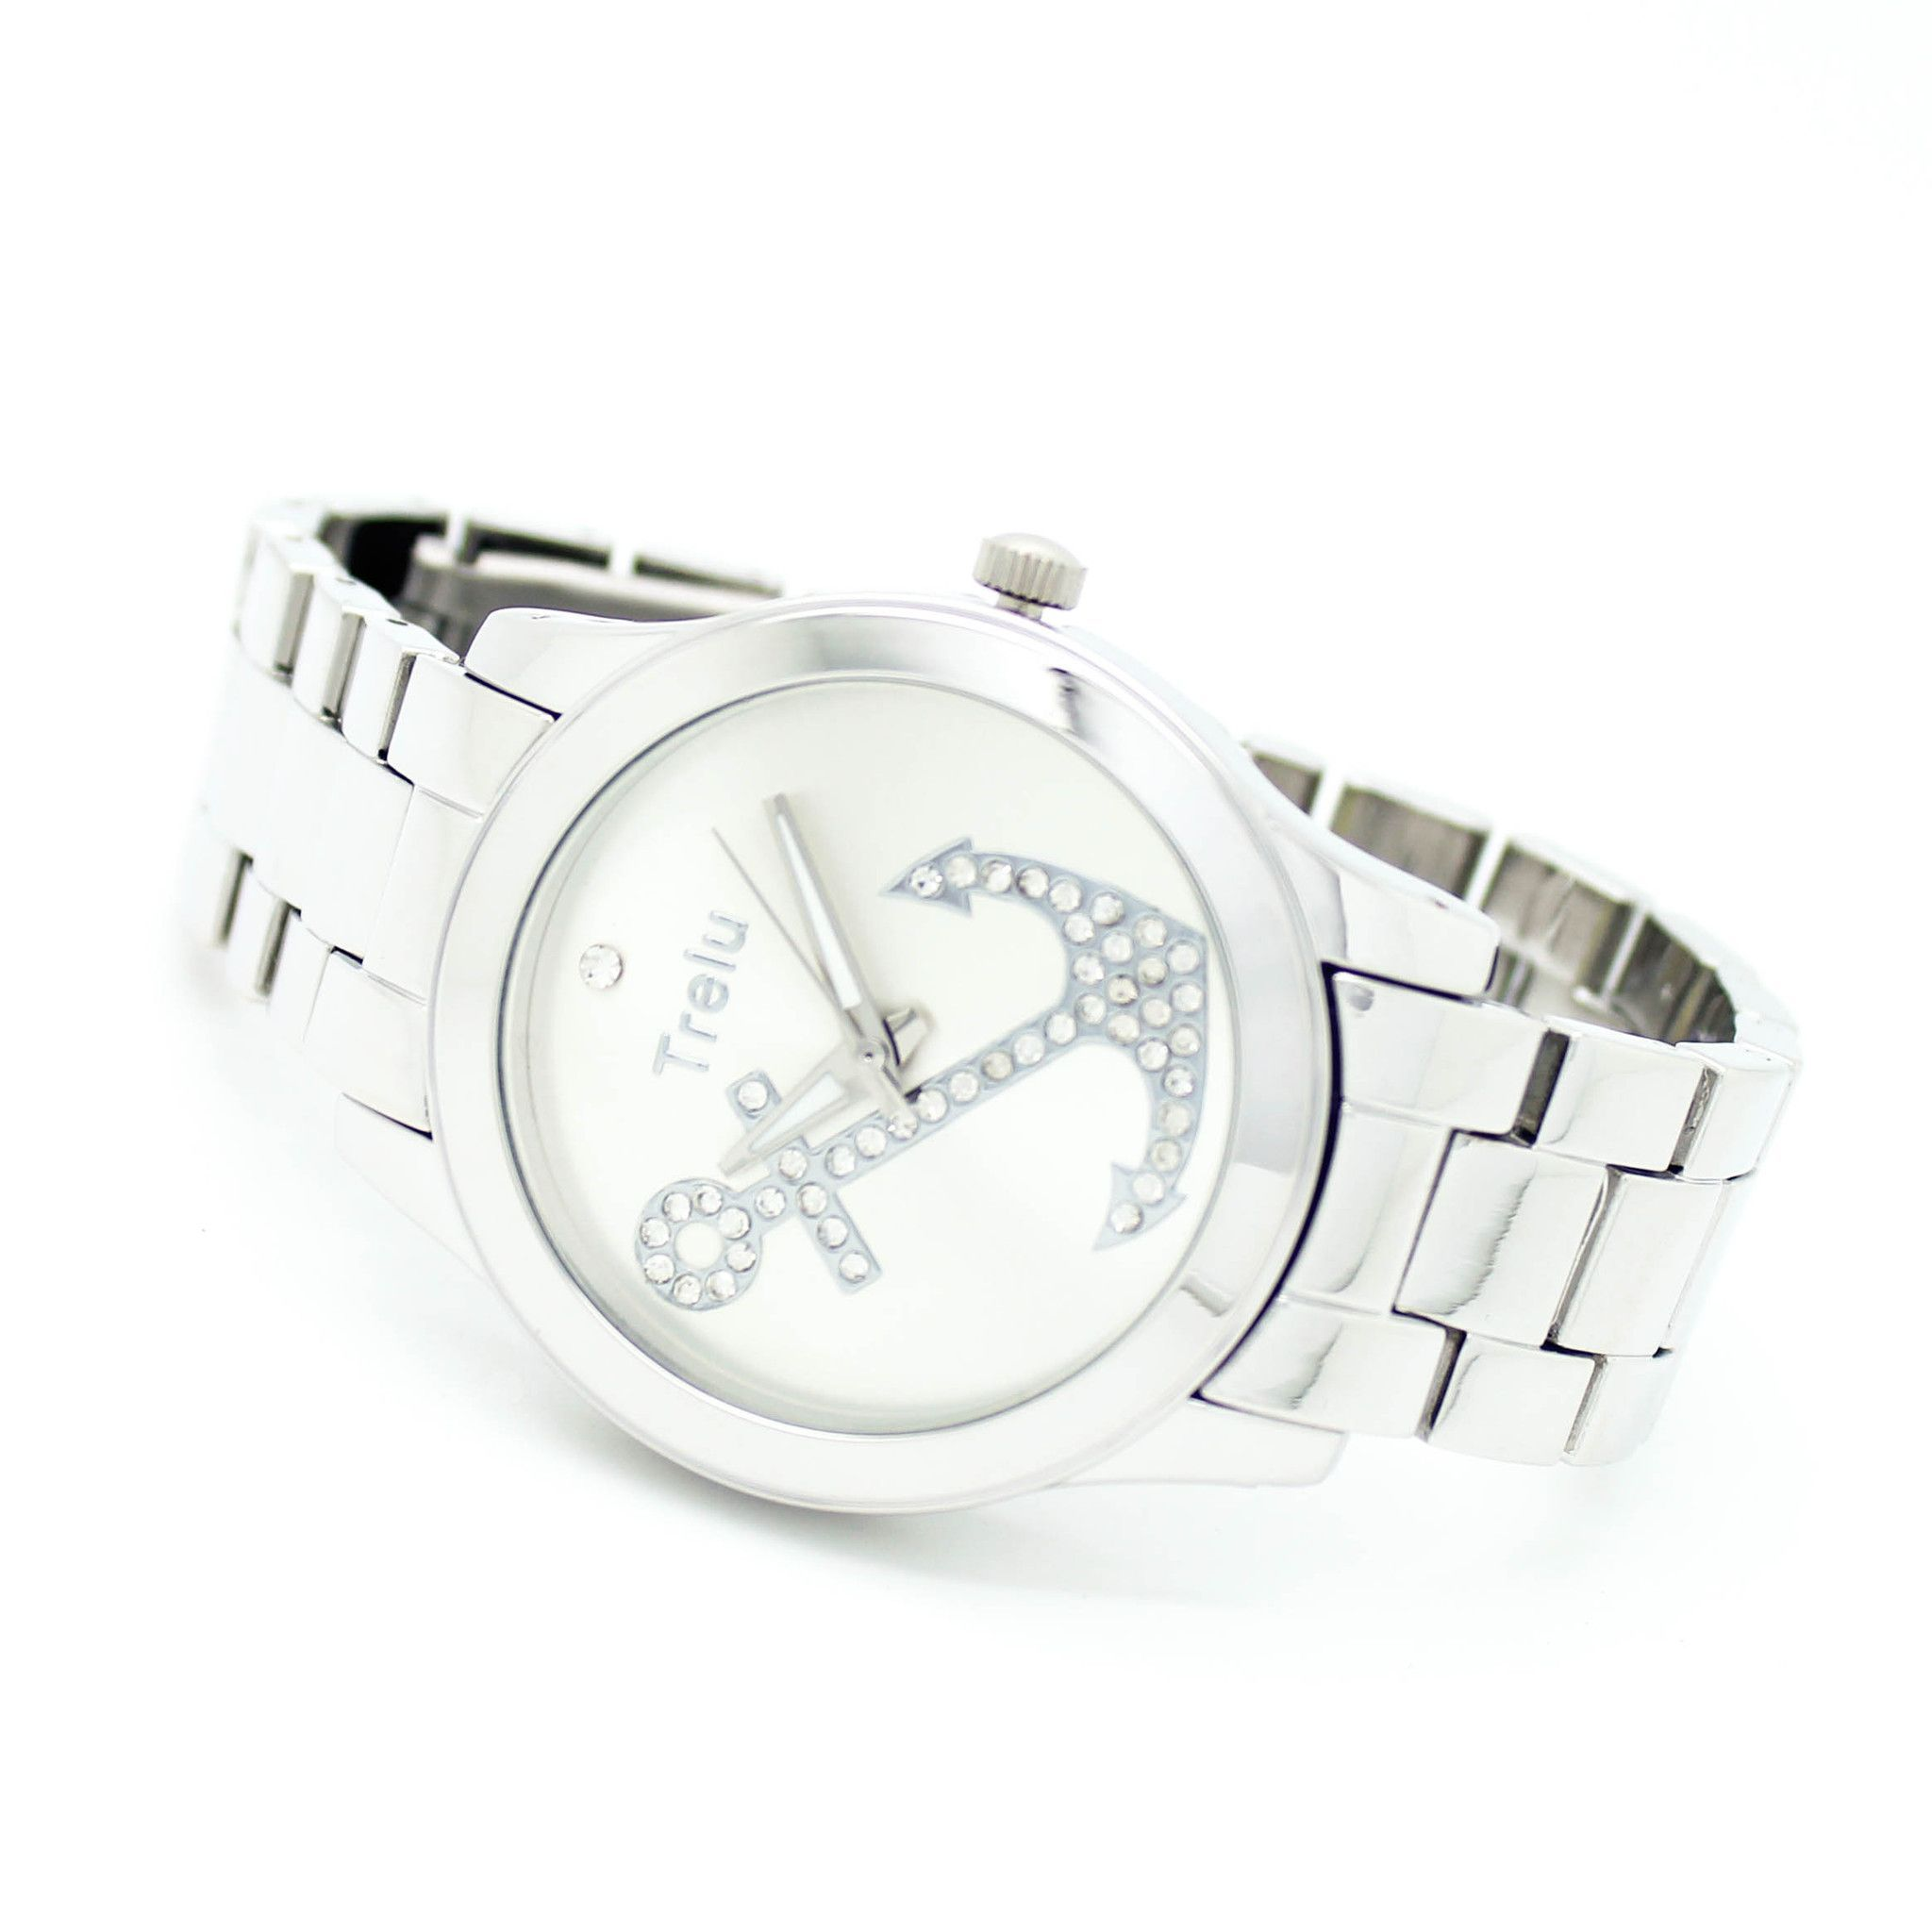 Anchor metal watch (3 colors)